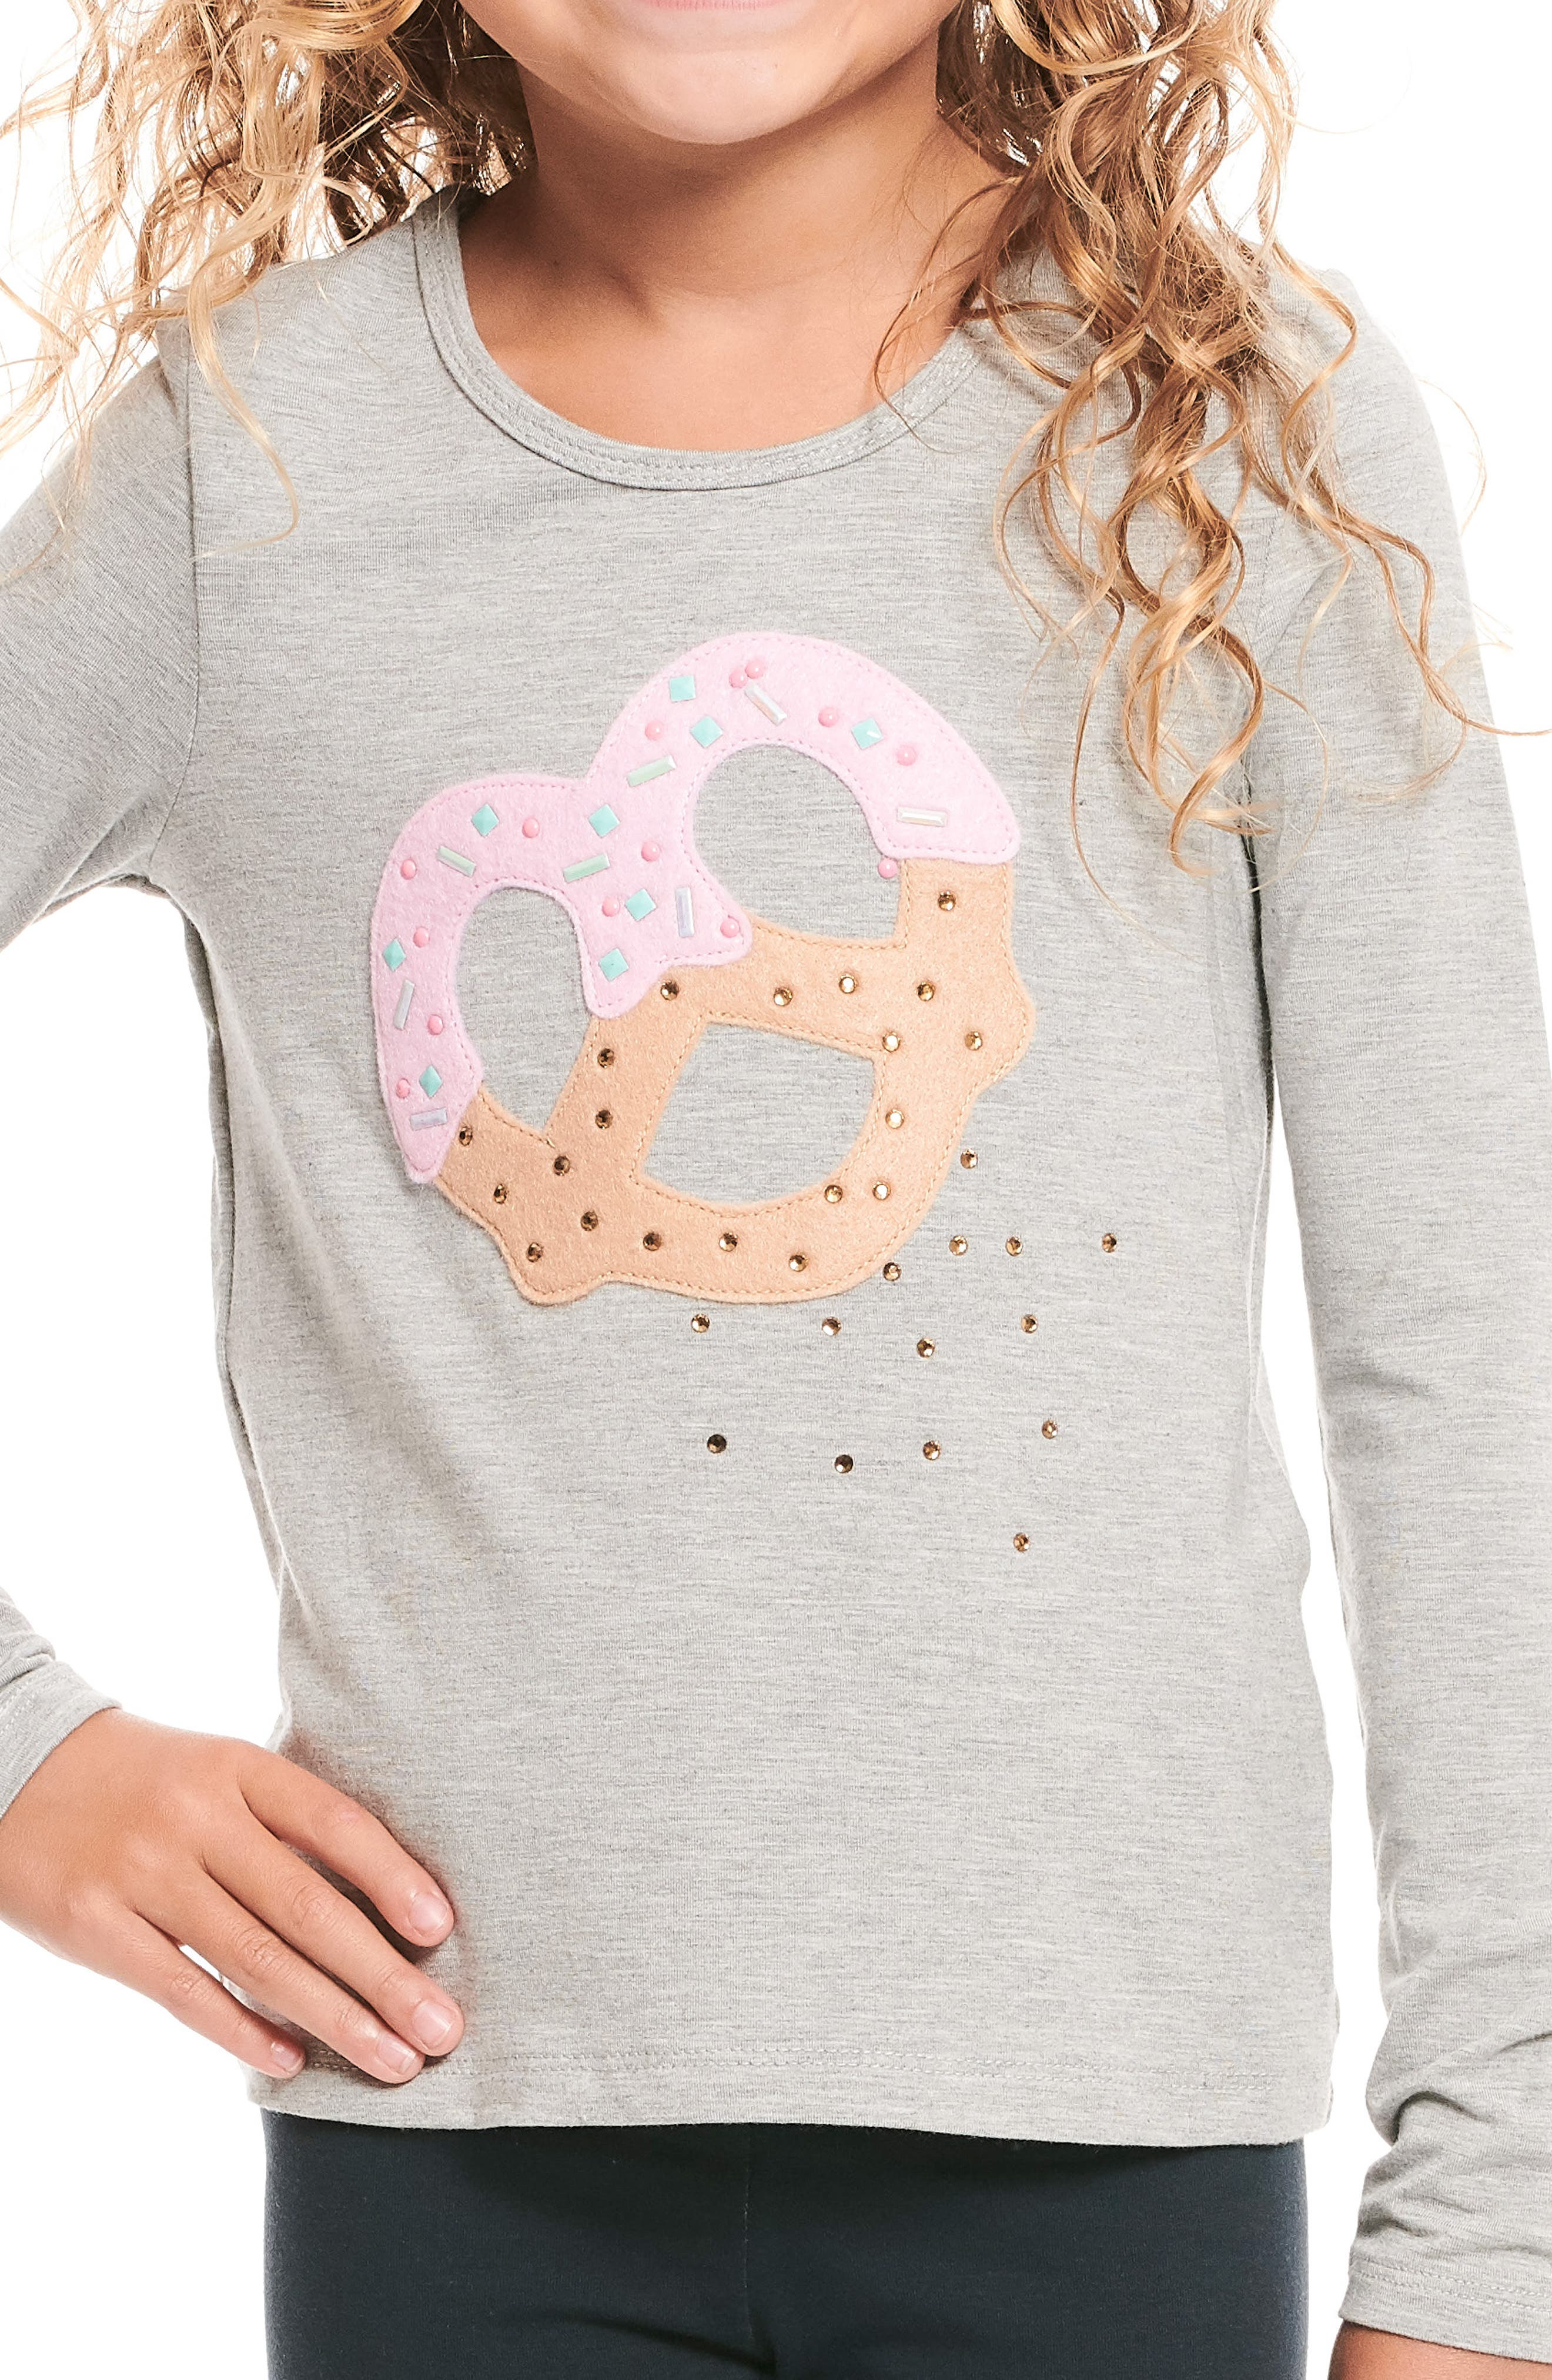 Pretzel Tee,                             Alternate thumbnail 3, color,                             HEATHER GREY